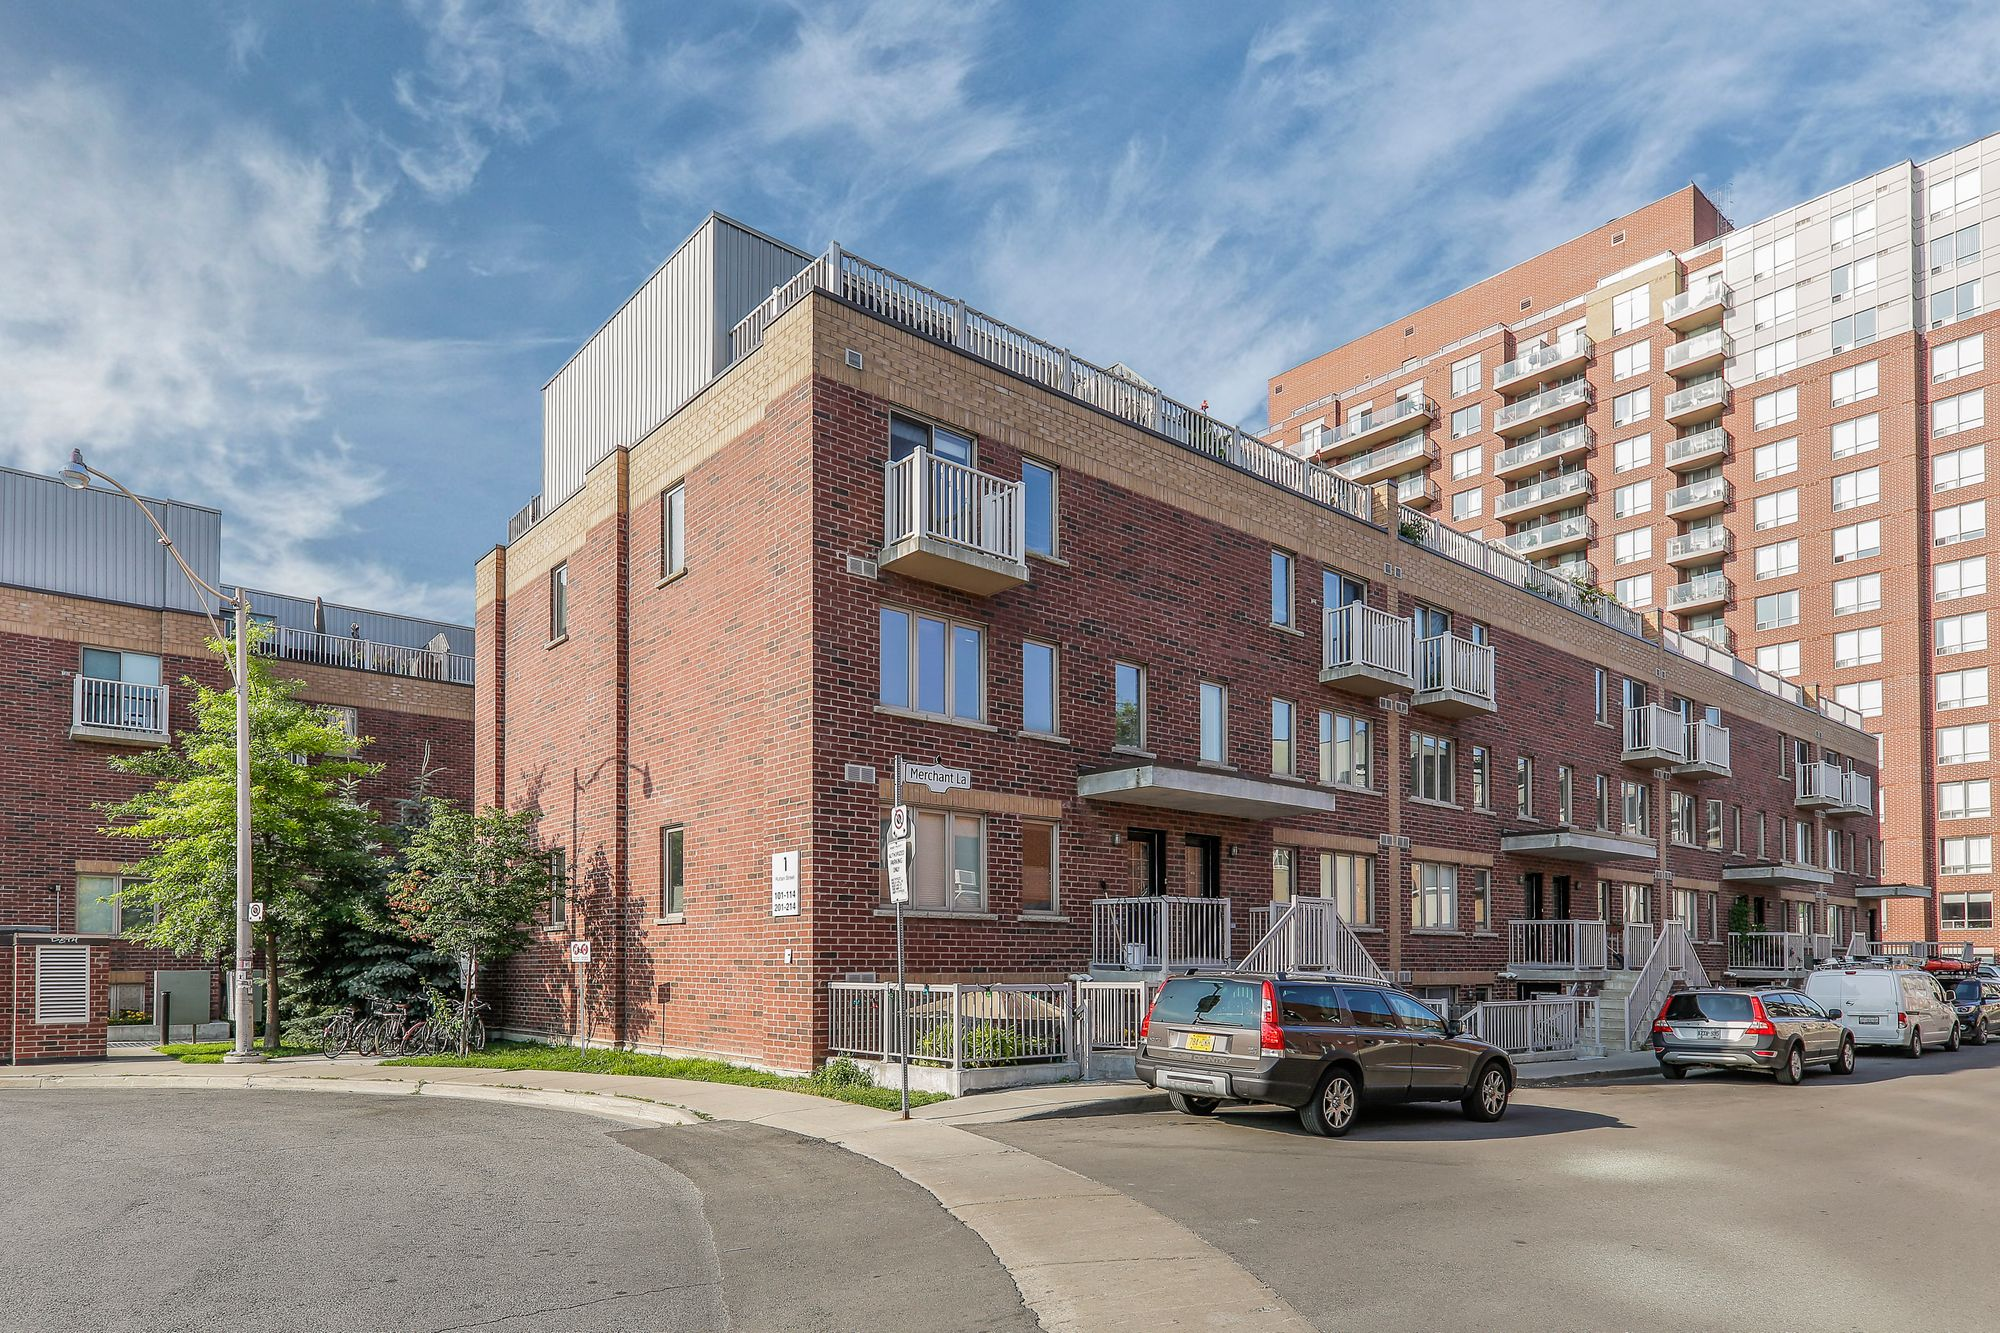 1-21 Ruttan St. This condo townhouse at Brownstones on Bloor is located in  West End, Toronto - image #2 of 5 by Strata.ca